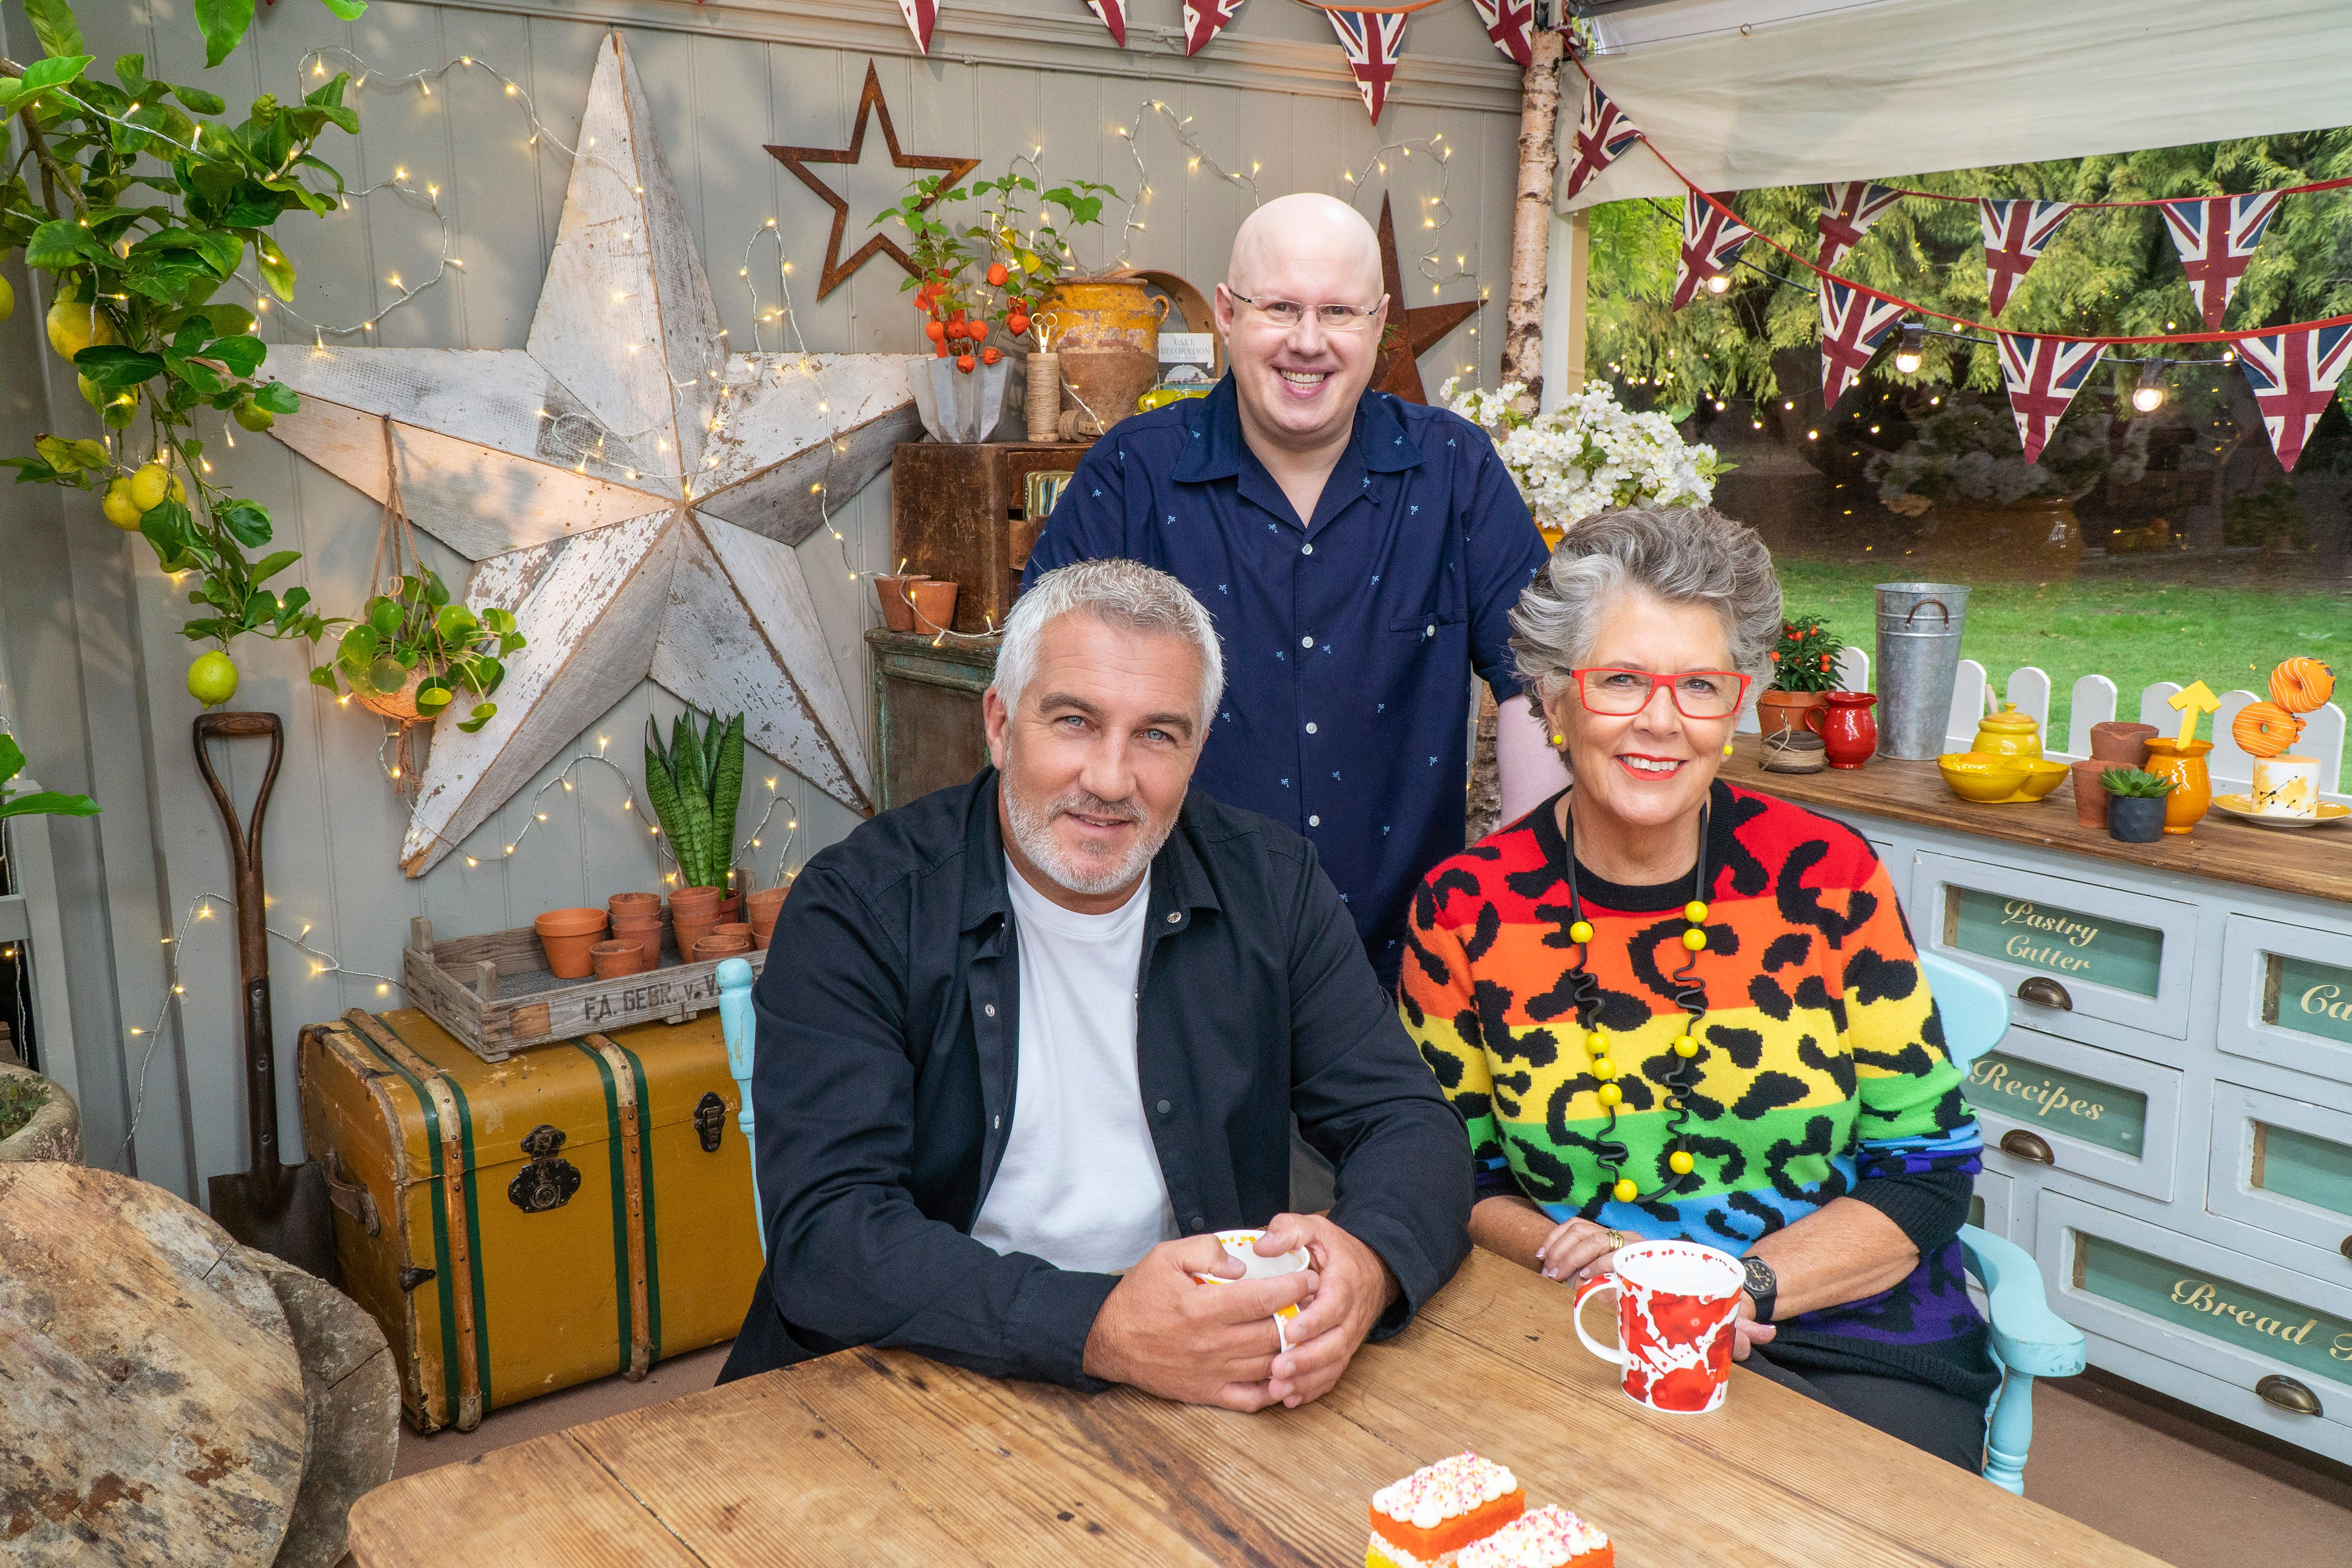 Paul Hollywood: I learnt a new skill thanks to new Celebrity Bake Off